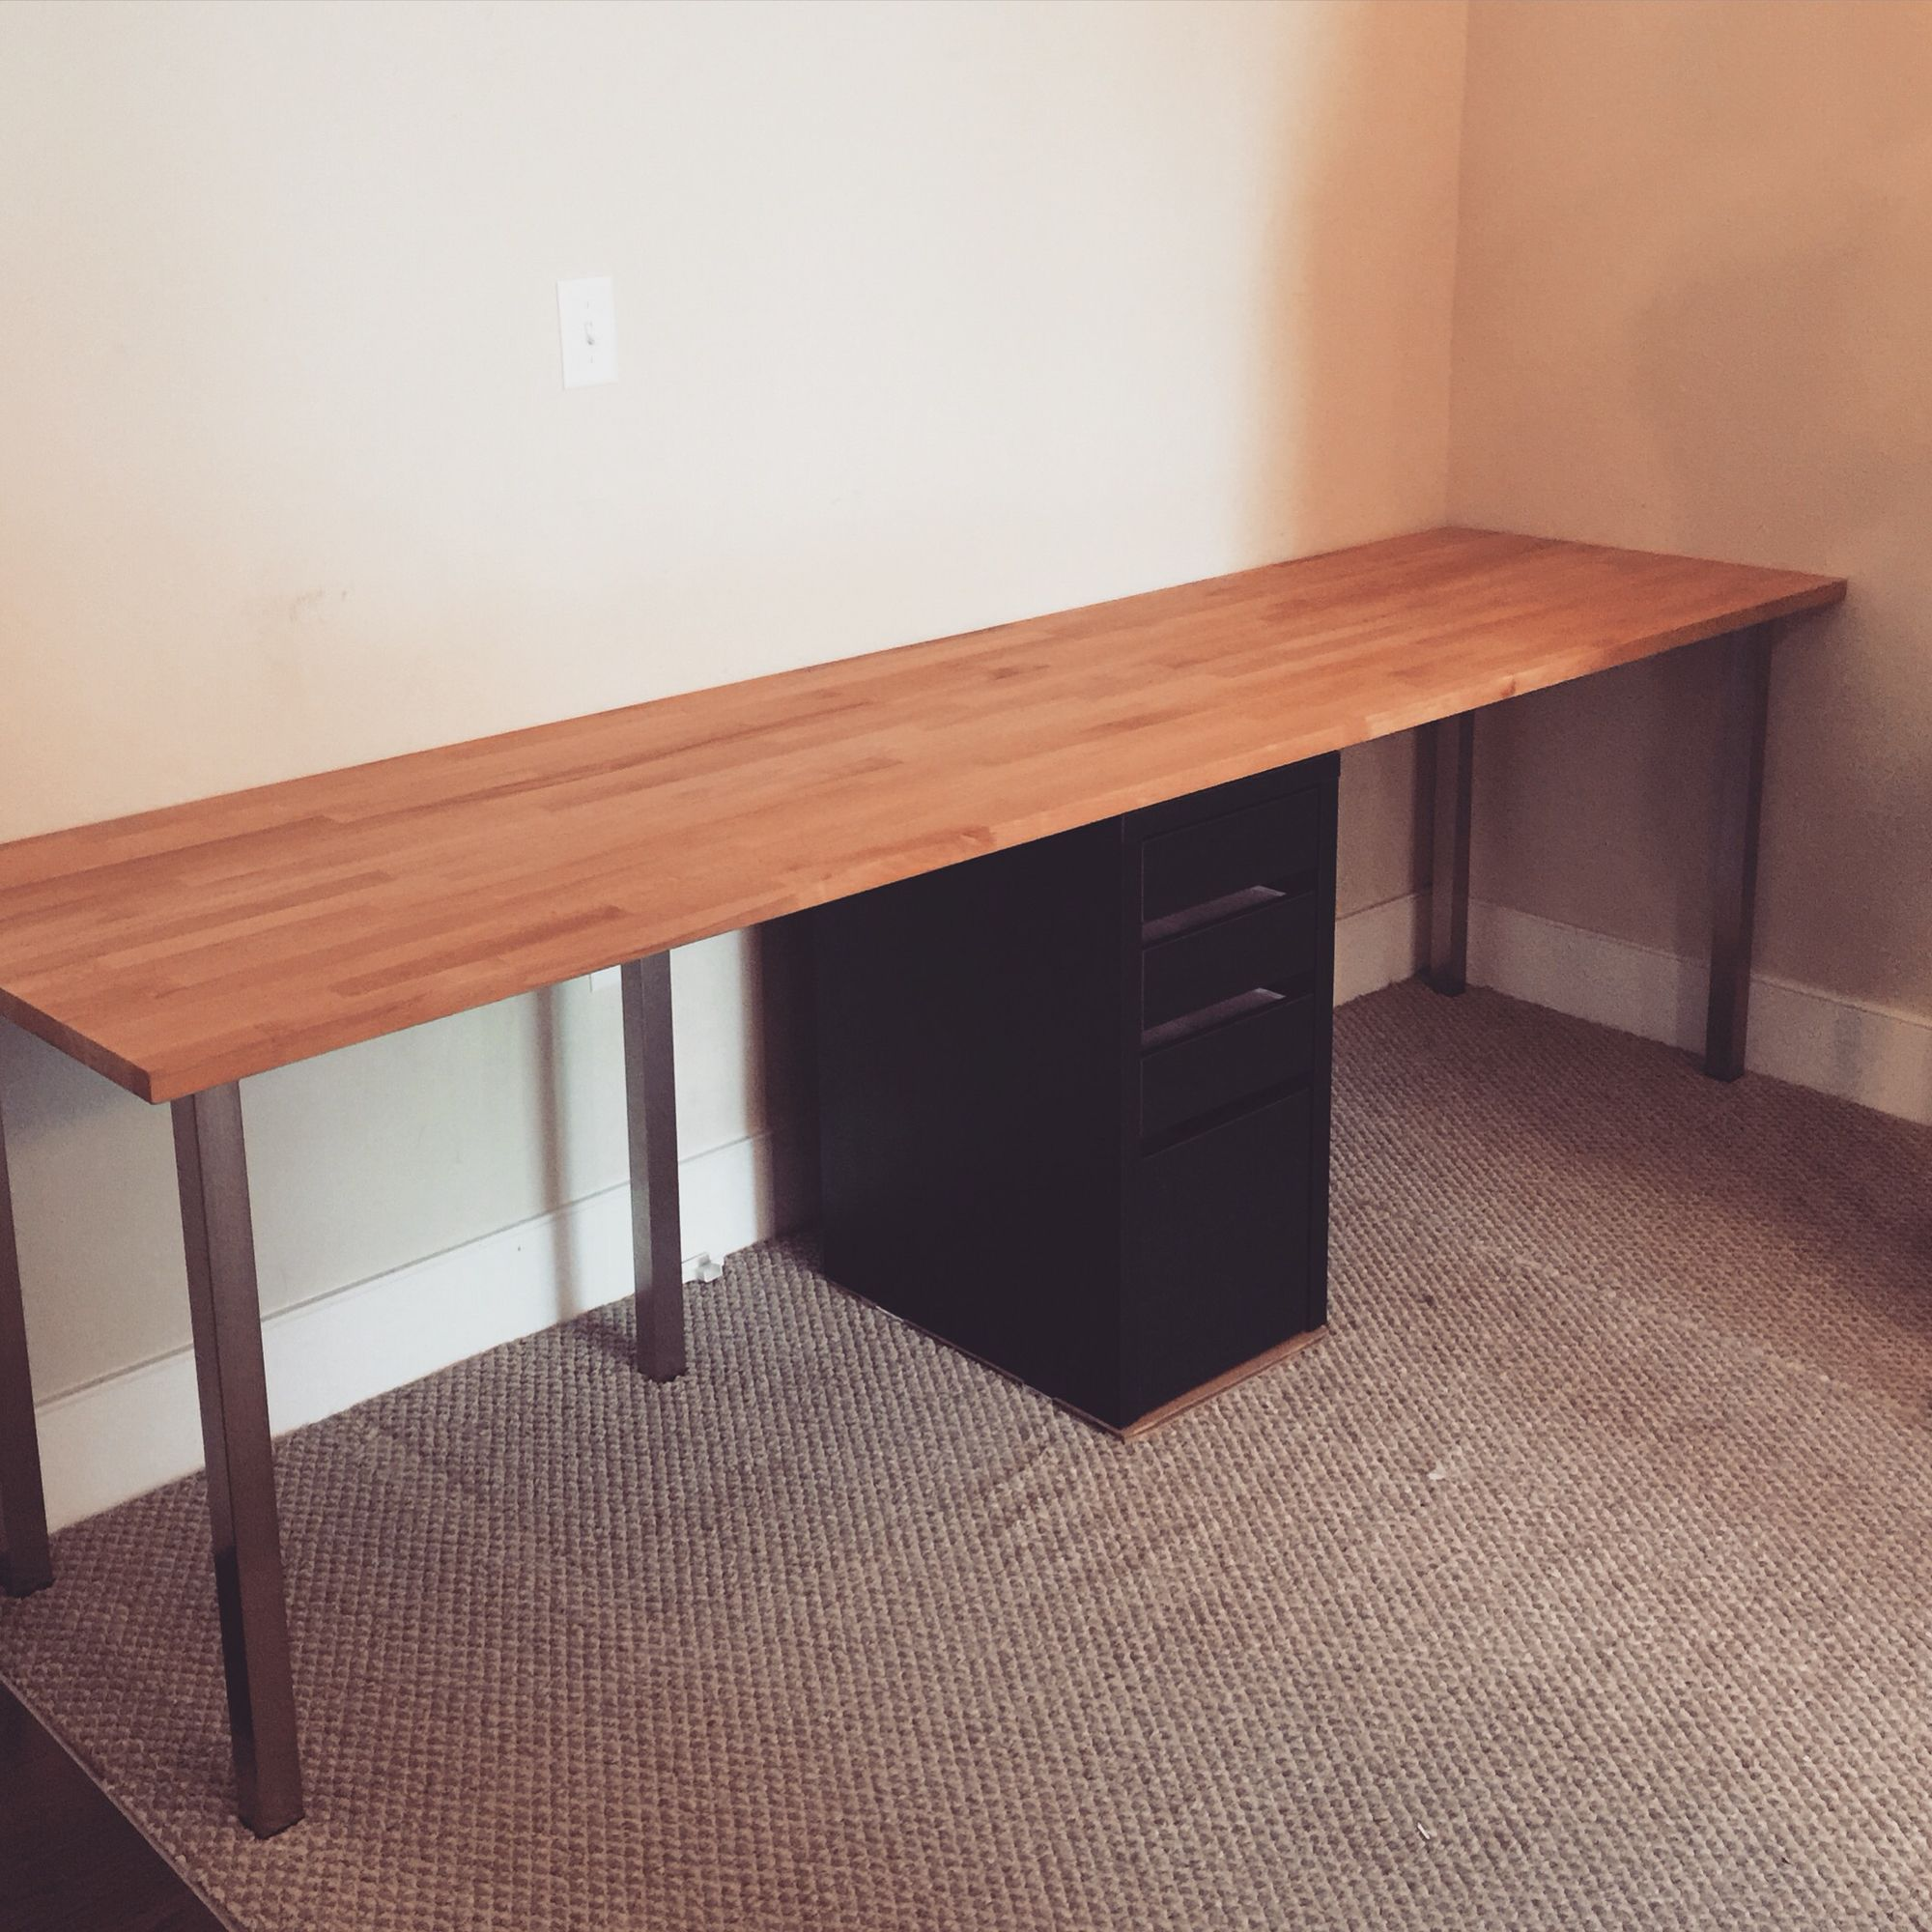 Ikea Kitchen Desk: DIY IKEA Desk Parts: KARLBY Countertop, Beech: $139 SJUNNE